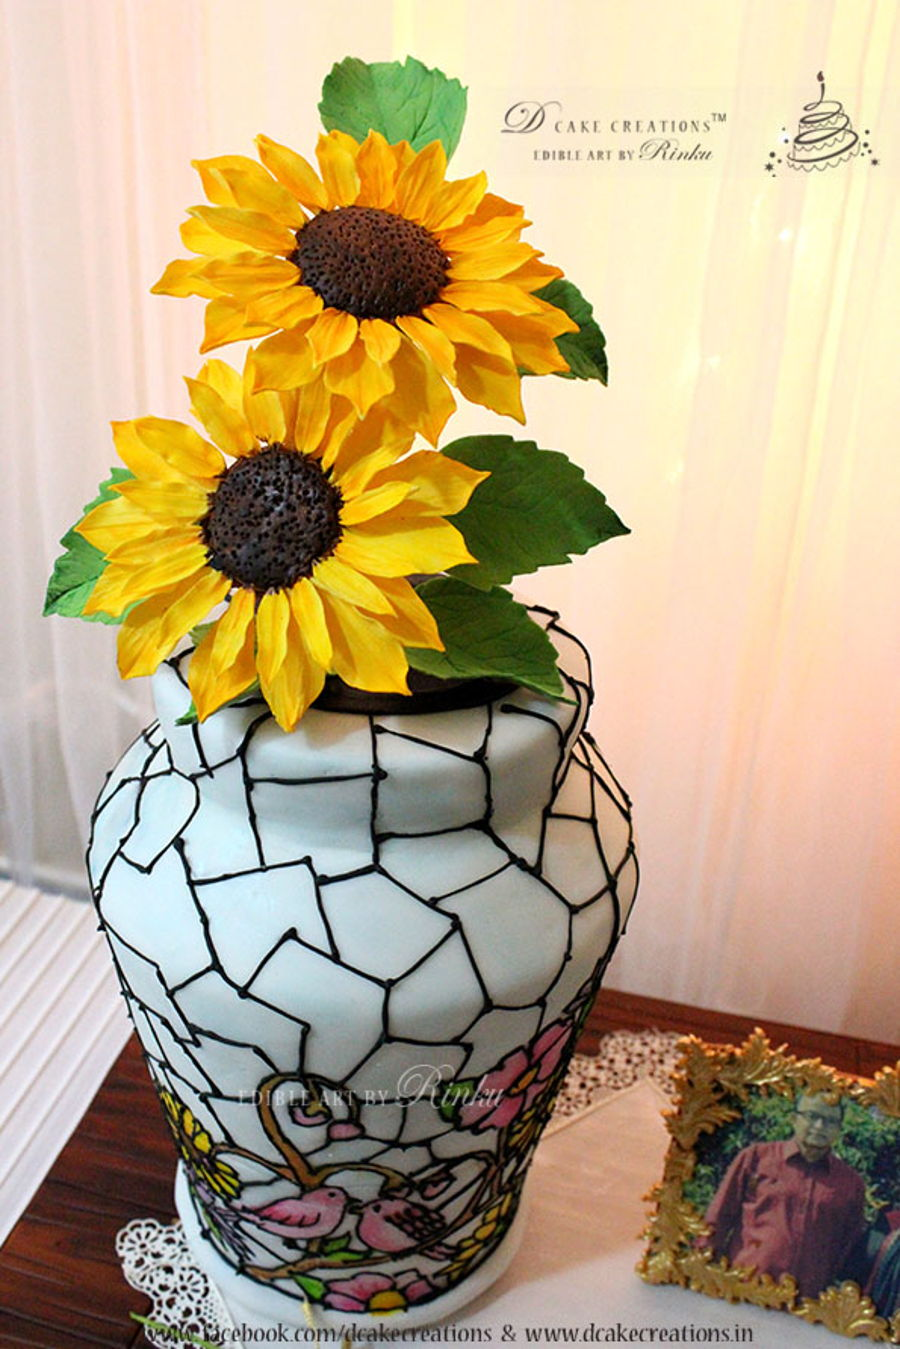 Stained glass flower vase cake cakecentral the flower vase cake with the stain glass finish stands at 11 and is accompanied with sugar sunflowers the cake is placed on a hand painted wooden grain reviewsmspy